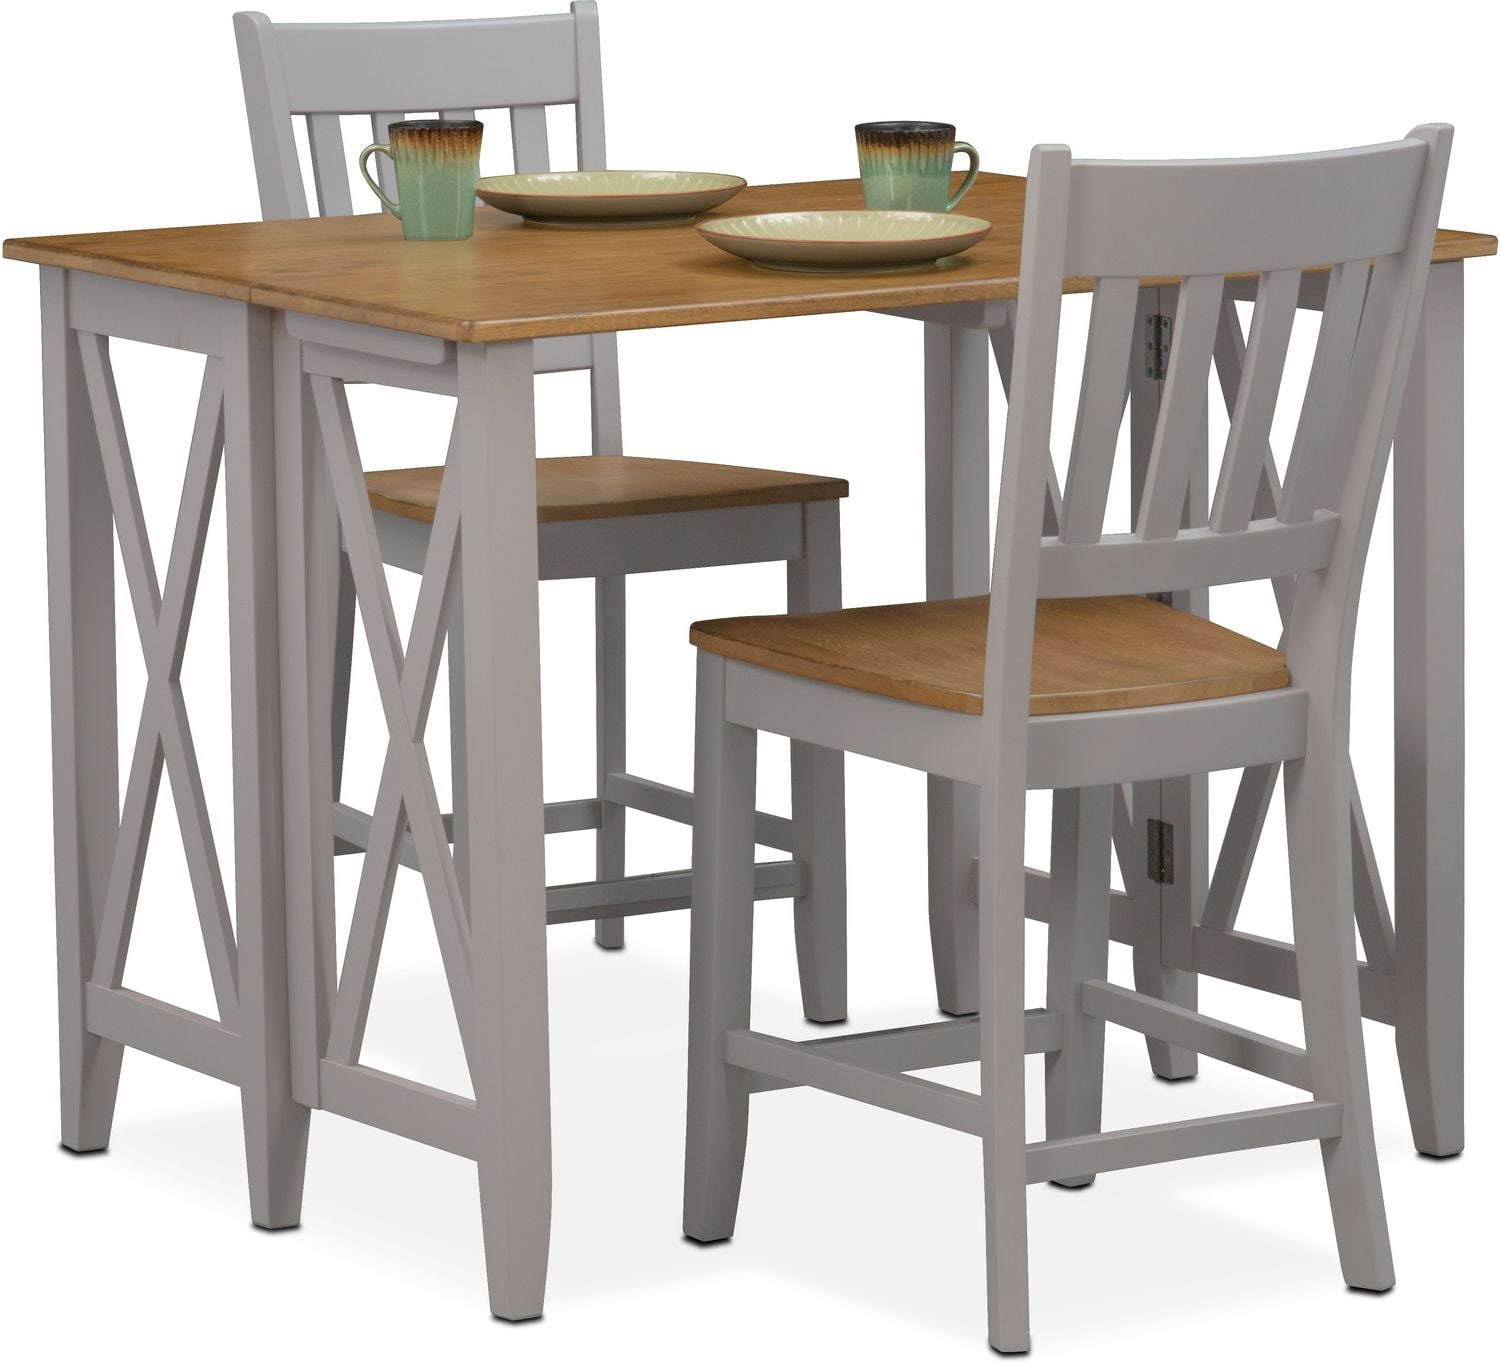 Nantucket Breakfast Bar And 2 Counter Height Slat Back Chairs Oak And Gray American